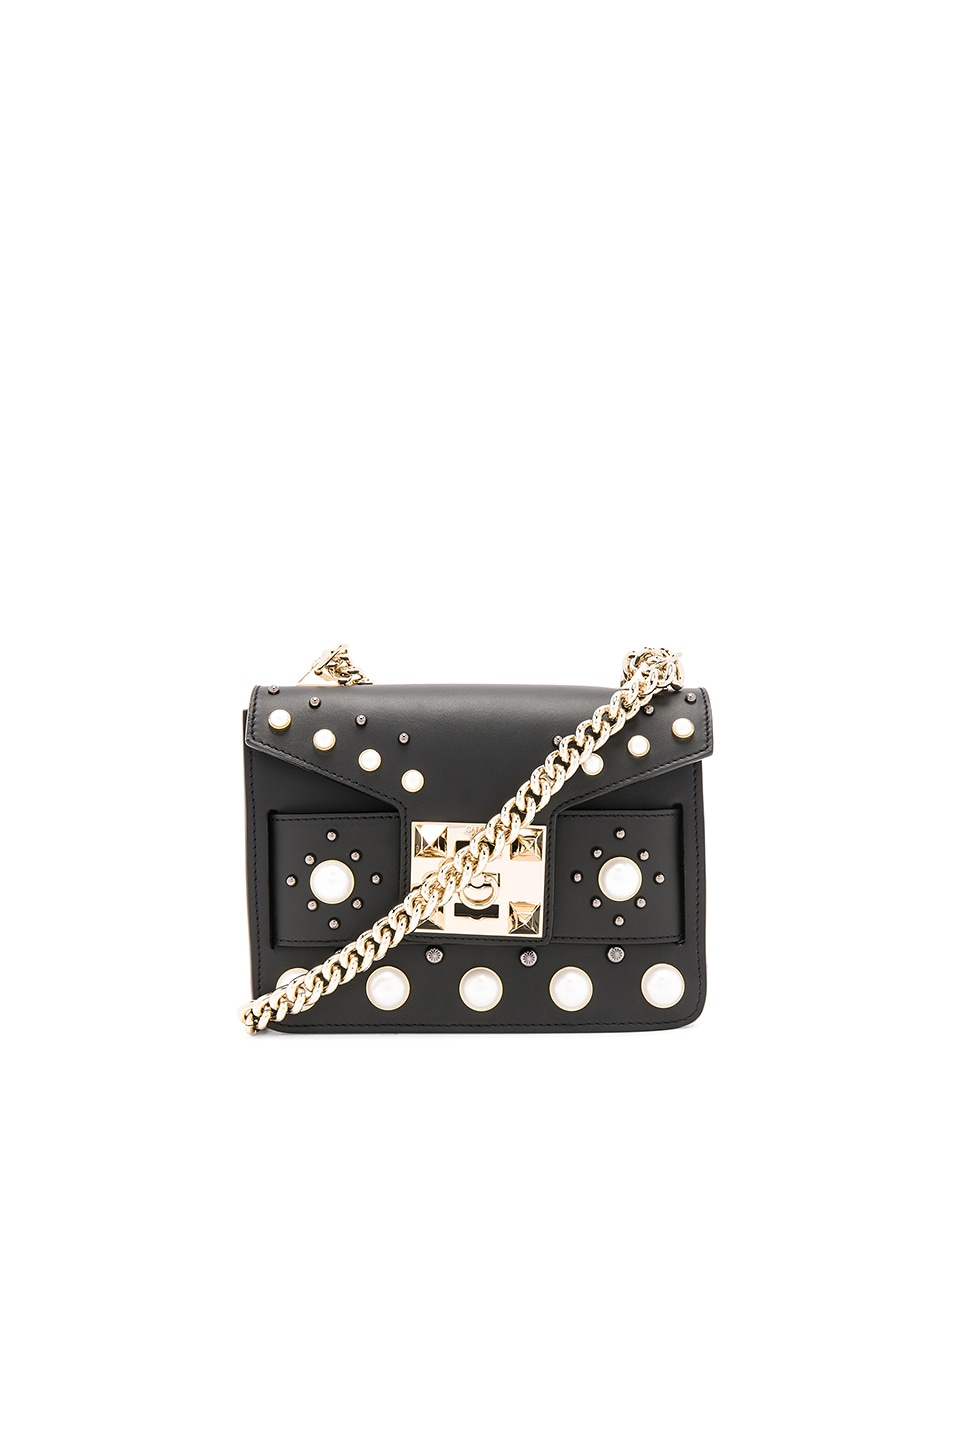 SALAR Mila Pearl Bag in Black